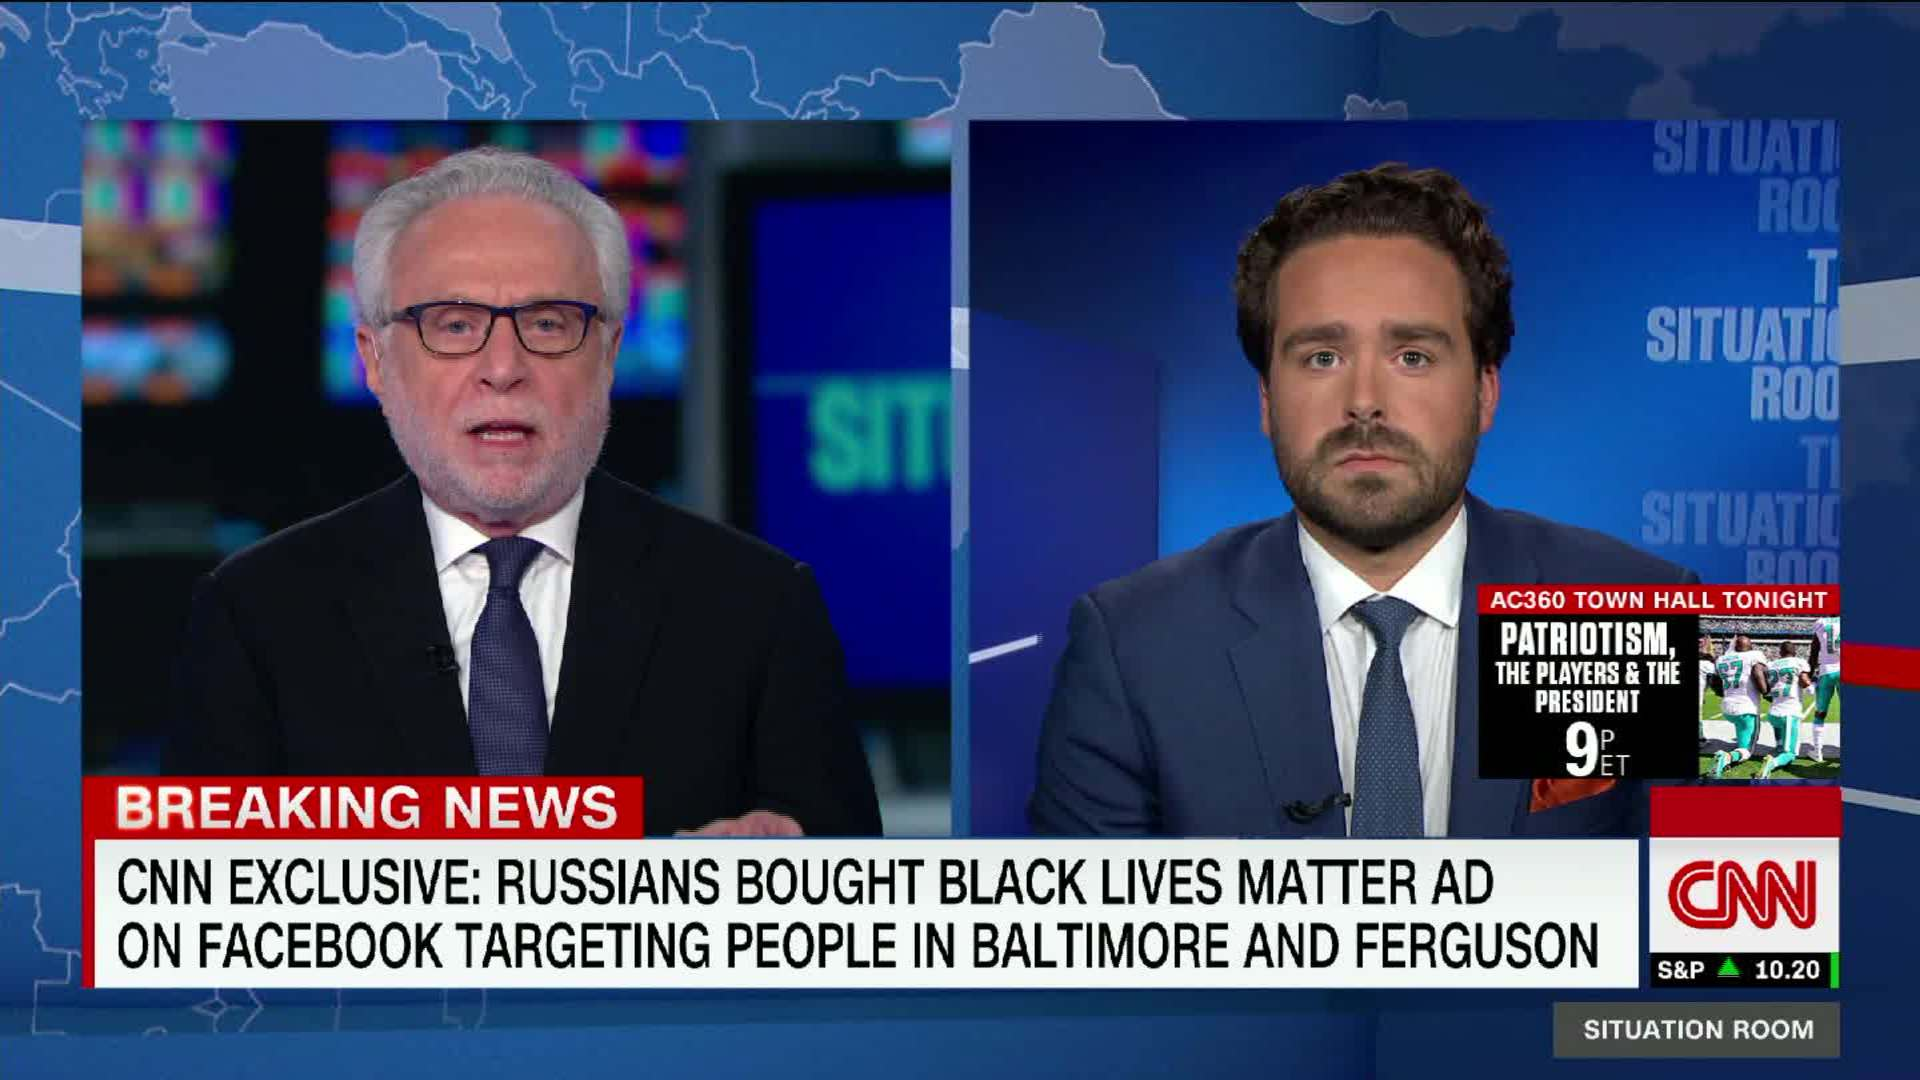 Russia Bought Black Lives Matter Ad On Facebook   CNN Video